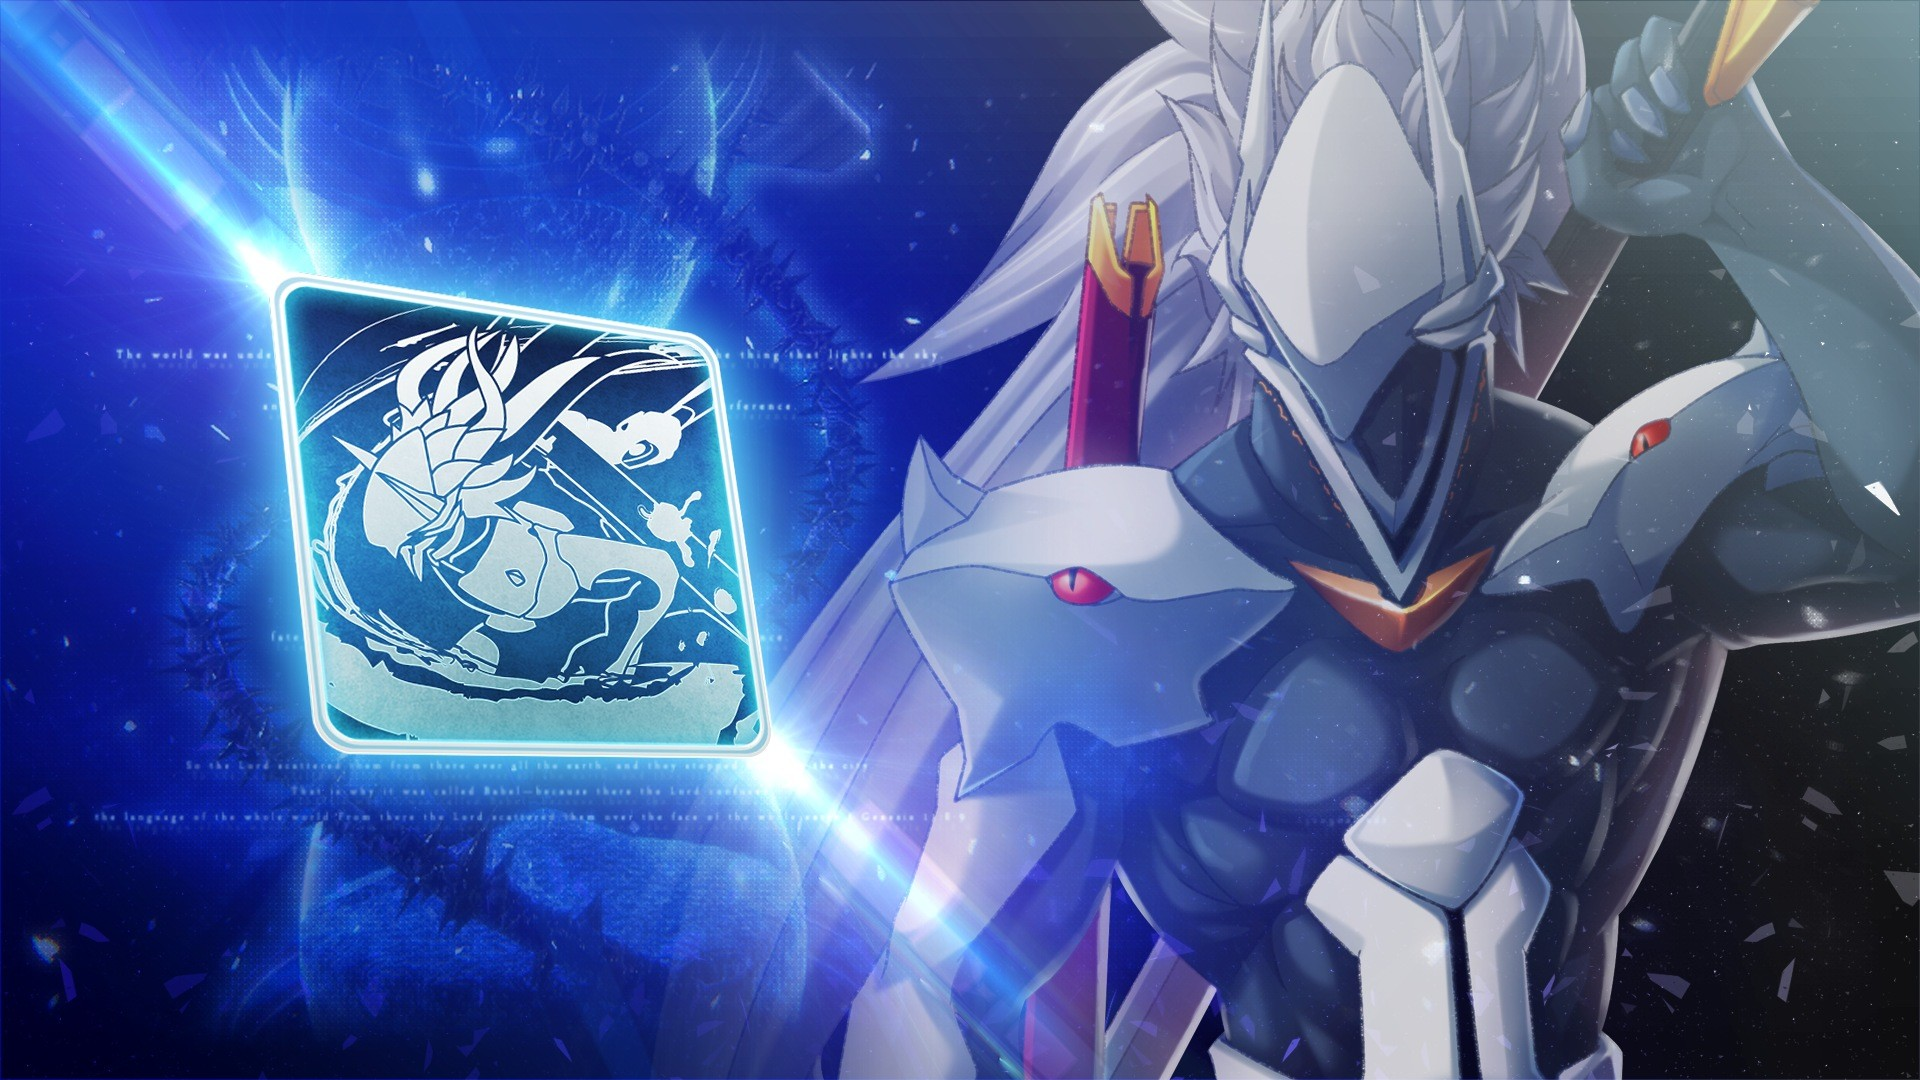 Blazblue Hakumen Wallpaper Wallpapertag